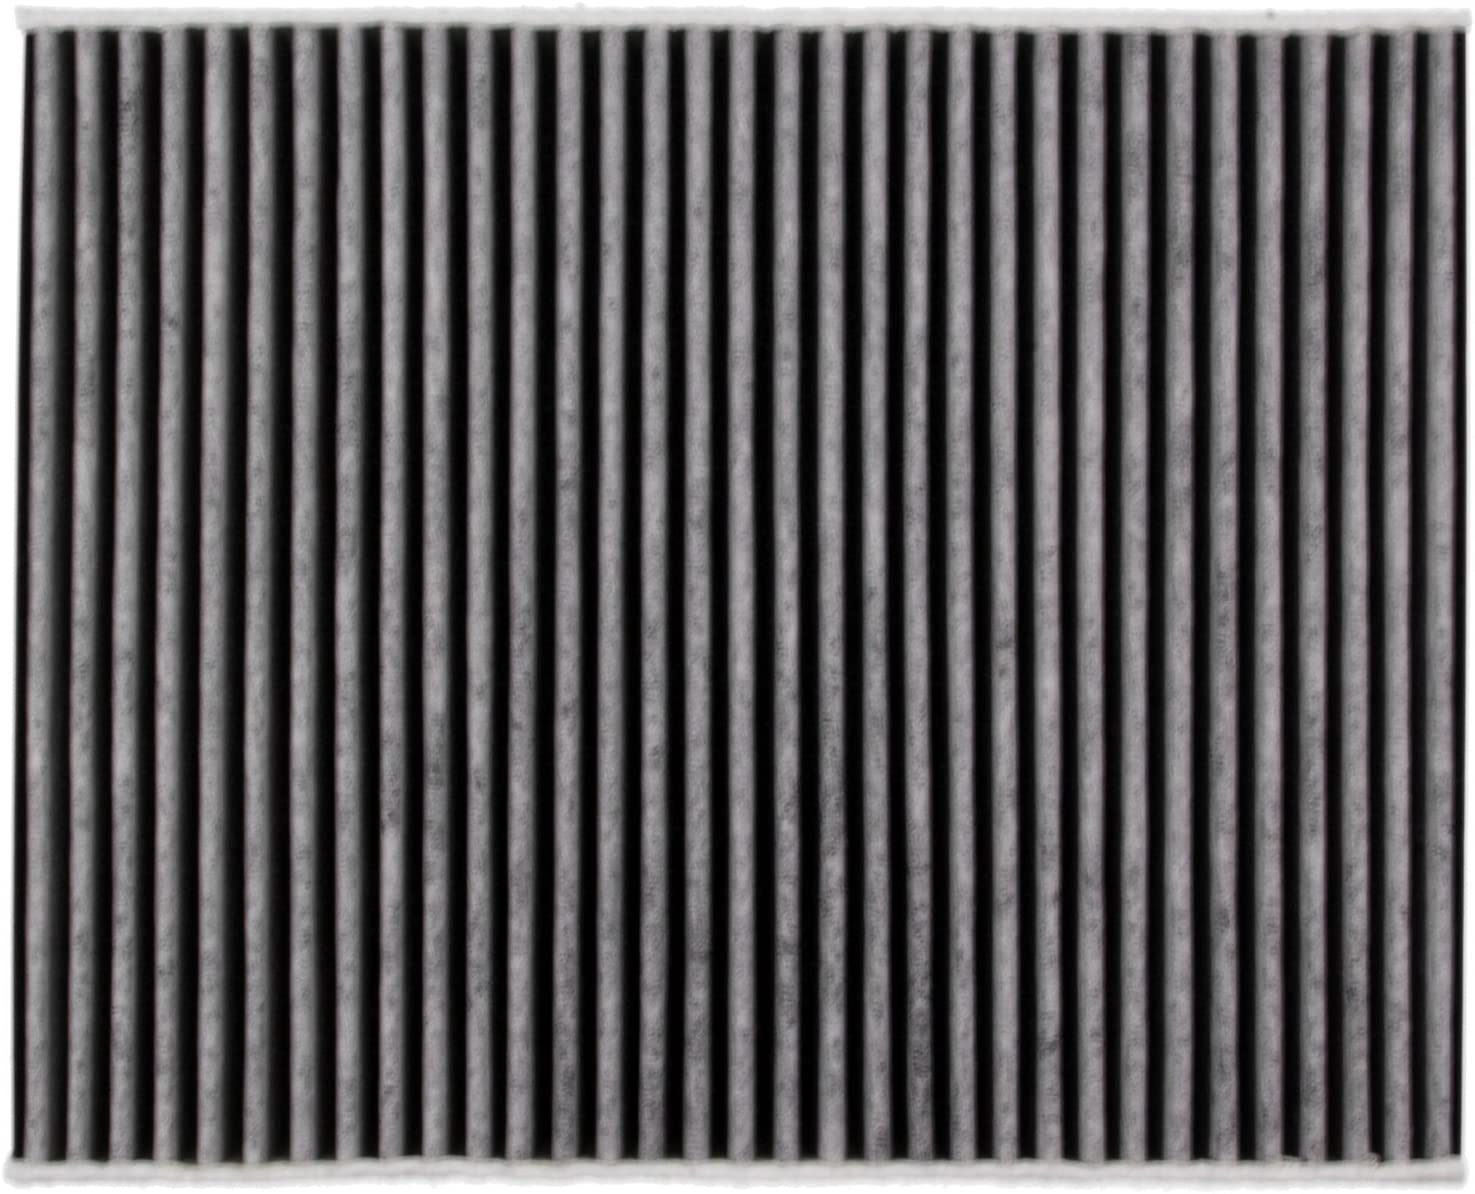 Mahle Cabin Filter   Carbon OE Replacement LAK812